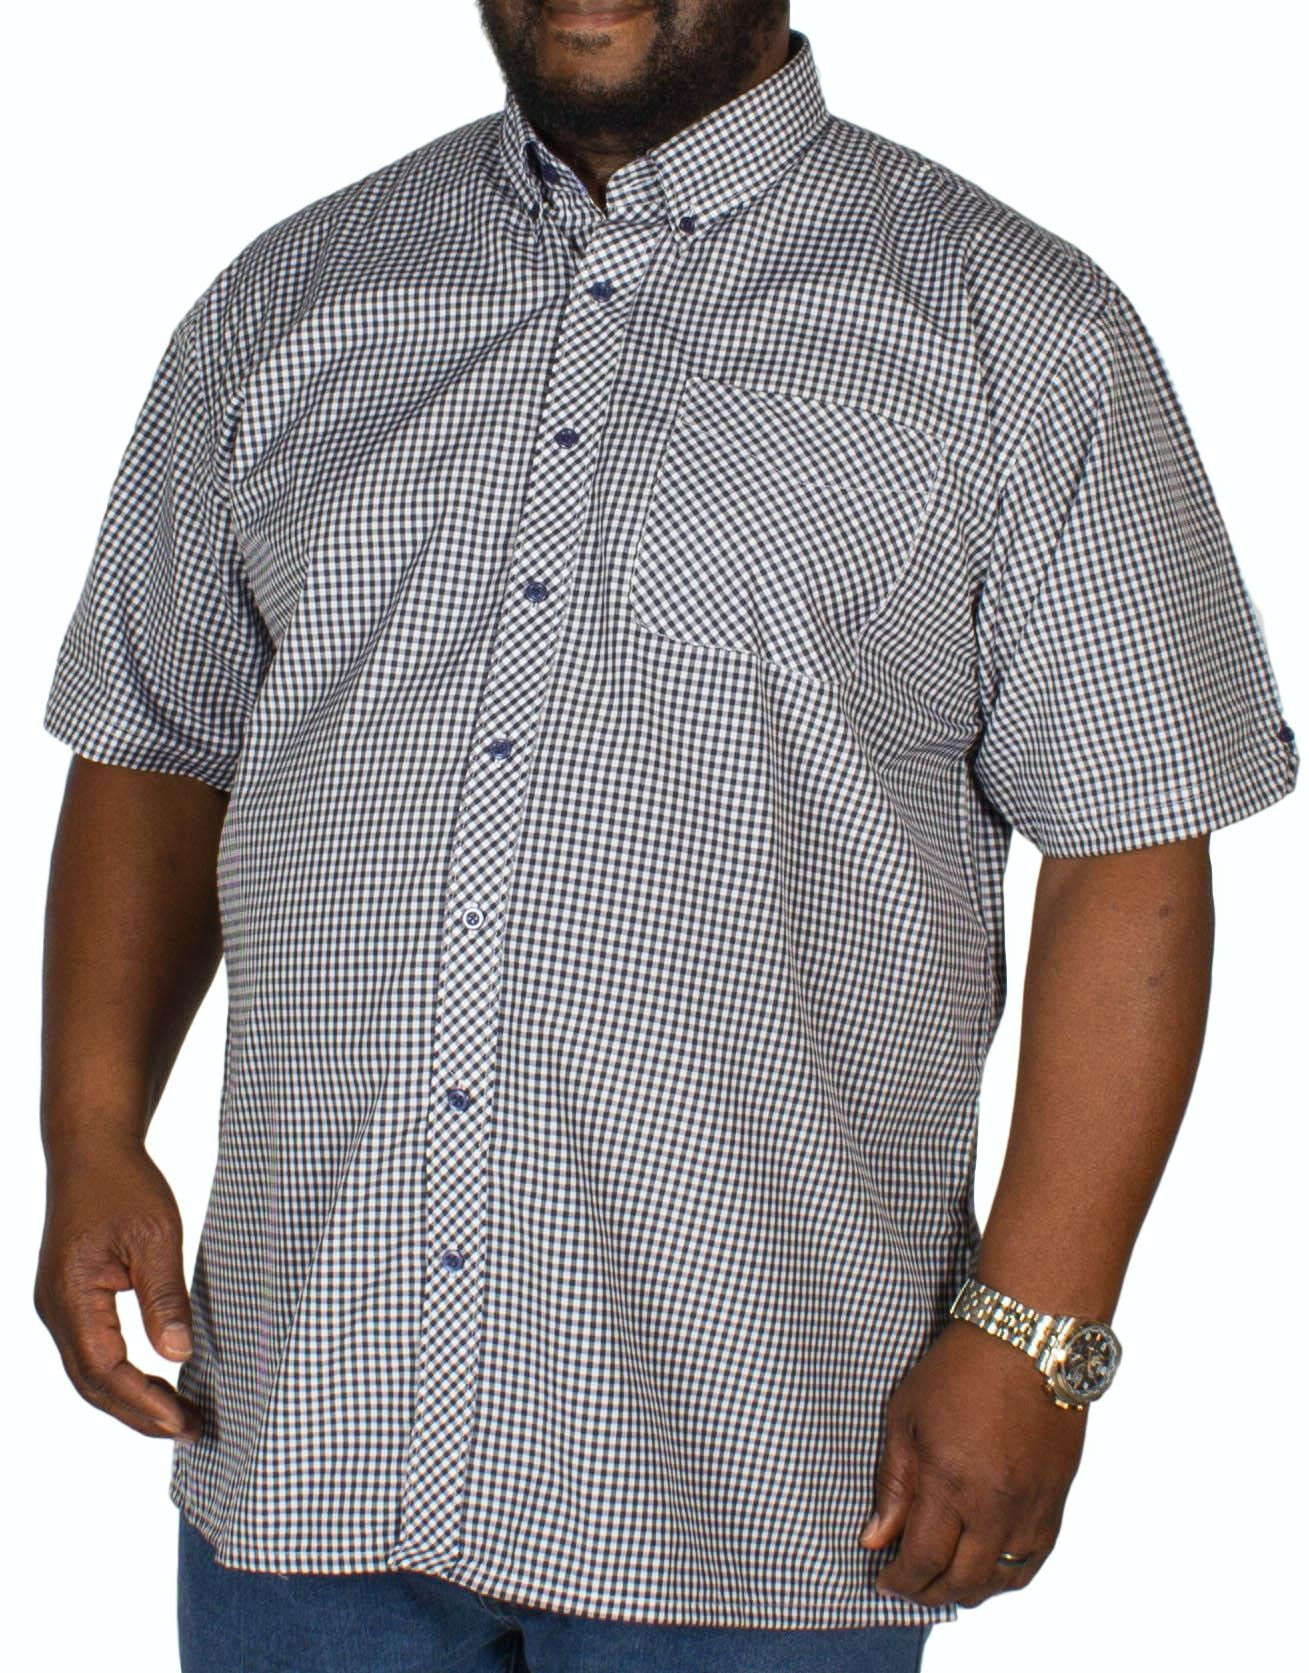 Espionage Gingham Short Sleeve Shirt Navy/White